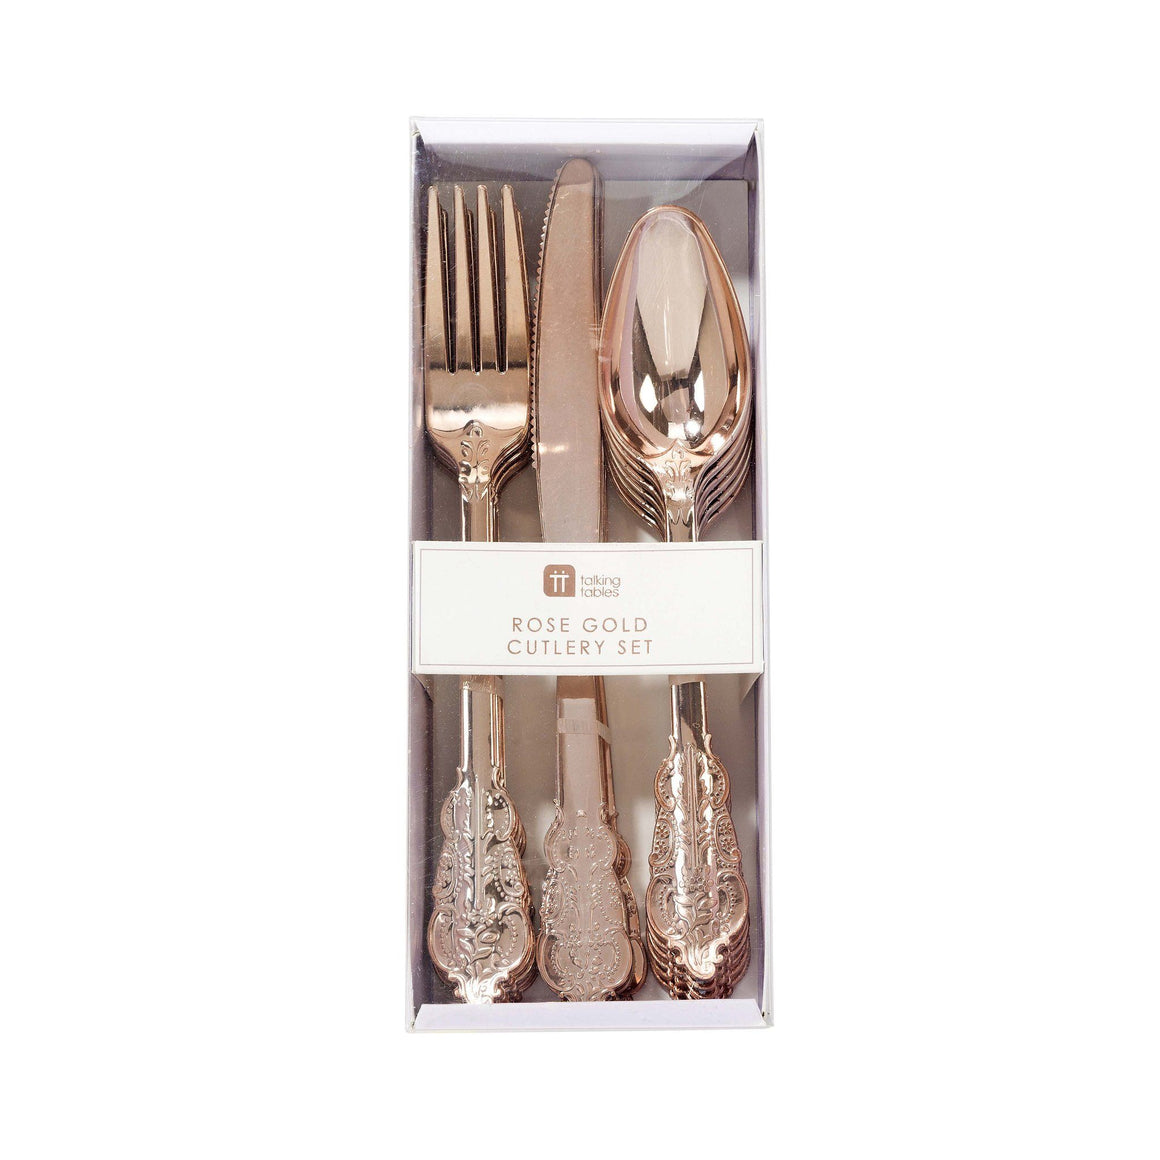 PREMIUM CUTLERY SET - ORNATE ROSE GOLD, Cutlery, TALKING TABLES - Bon + Co. Party Studio